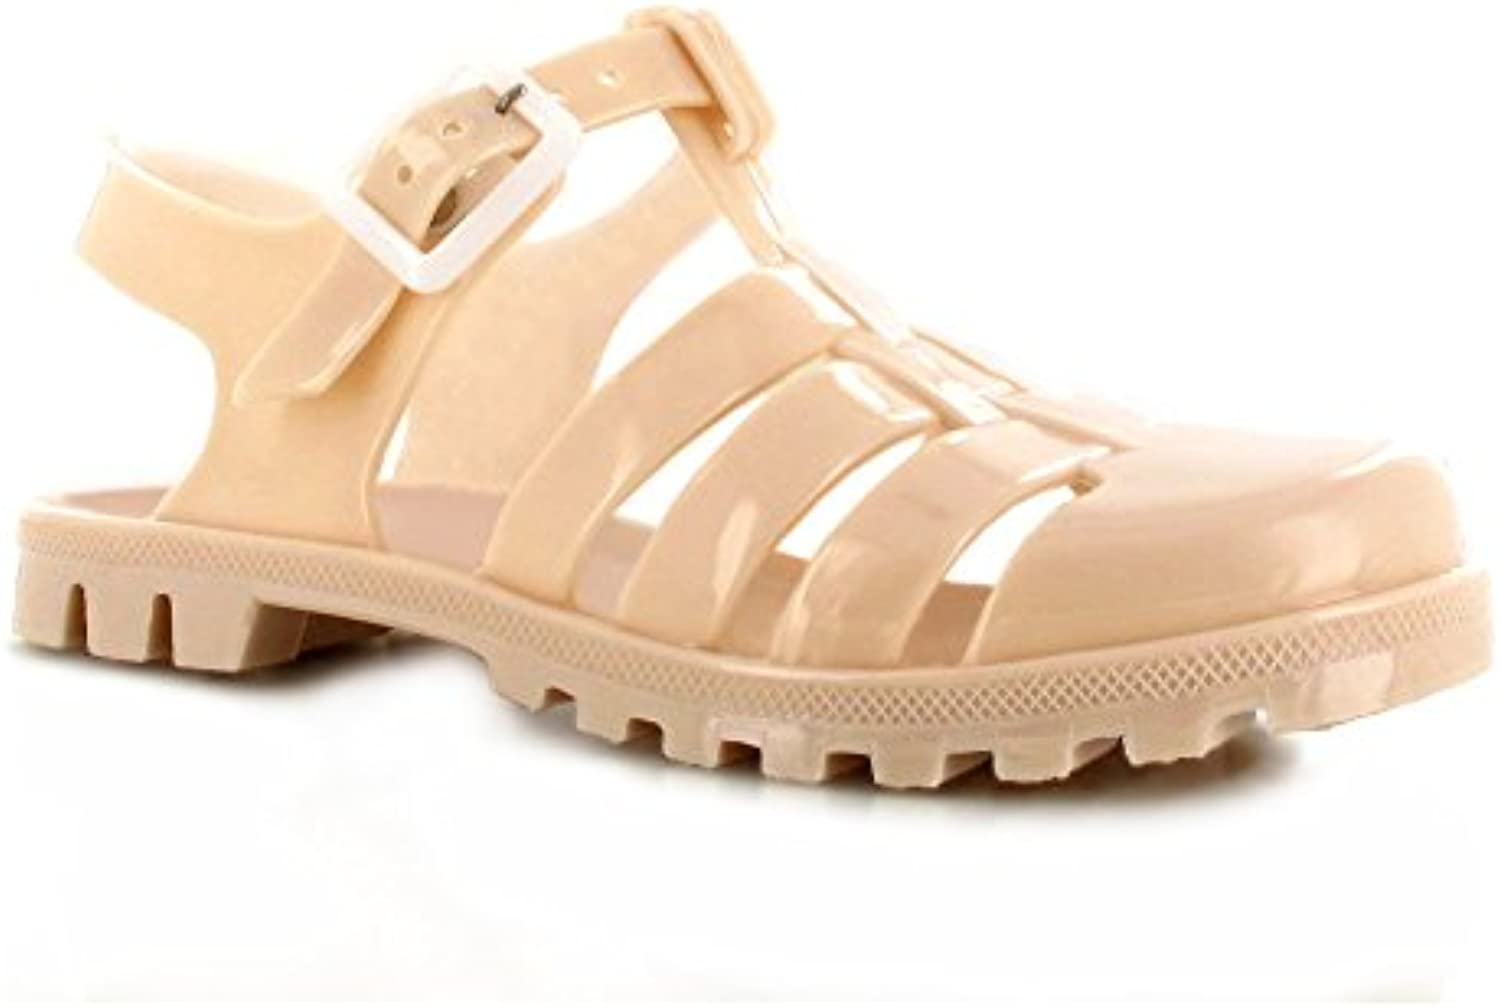 s mesdames flat rétro jelly summer sandales holiday holiday holiday tongs chaussures taille 3 4 5 6 7 8 (uk3 / ue 36 / 5, nu) e379d4